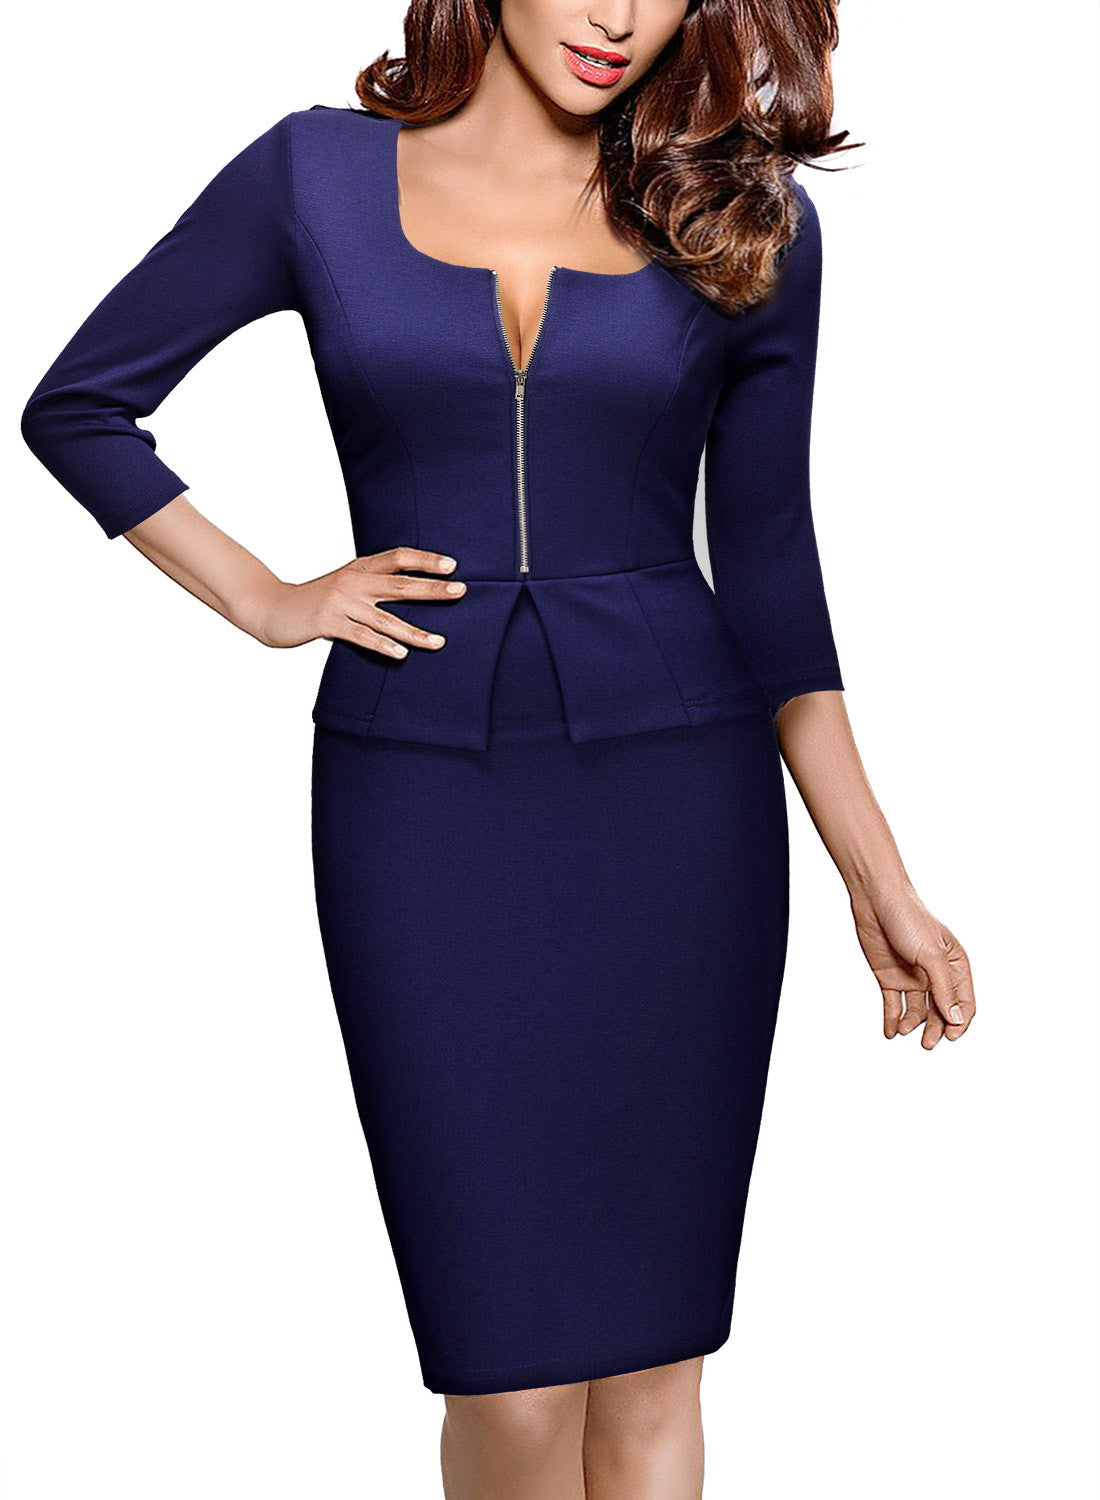 Square Neck Busniess Peplum Fitted Casual Bodycon Dress